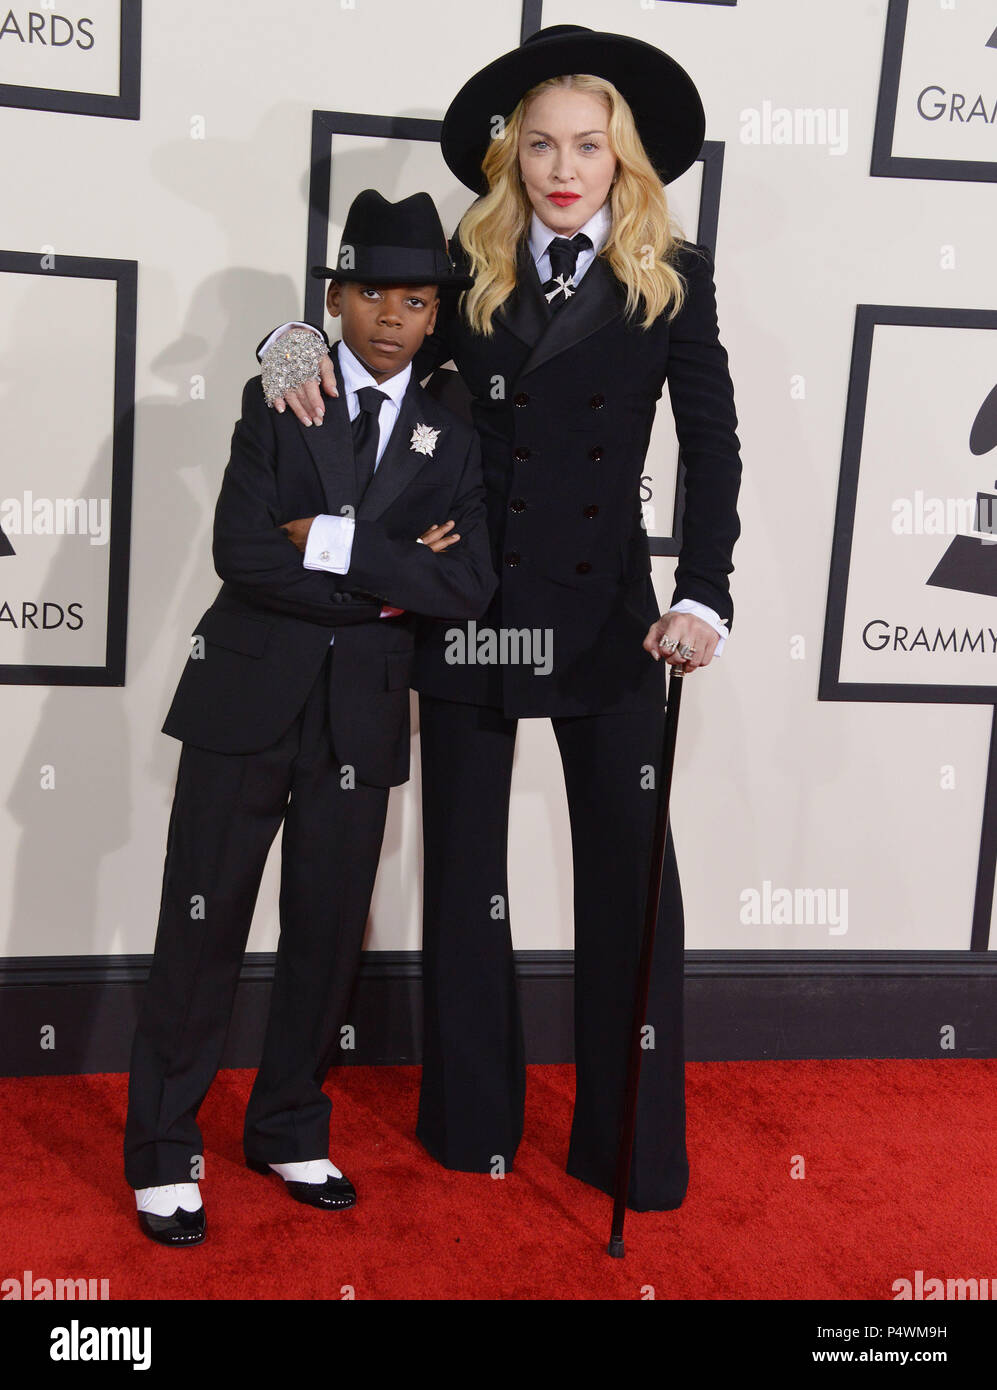 David Banda High Resolution Stock Photography And Images Alamy Sunday he flew with madonna, lourdes and rocco to new york where the singer is planning to promote her children's book and talk more about the adoption. https www alamy com madonna david banda mwale ciccone ritchie arriving at the 56th annual grammy awards 2014 at the staple center in los angelesmadonna david banda mwale ciccone ritchie 172 red carpet event vertical usa film industry celebrities photography bestof arts culture and entertainment topix celebrities fashion vertical best of event in hollywood life california red carpet and backstage usa film industry celebrities movie celebrities tv celebrities music celebrities photography bestof arts culture and entertainment topix vertical family from from the year image209547789 html